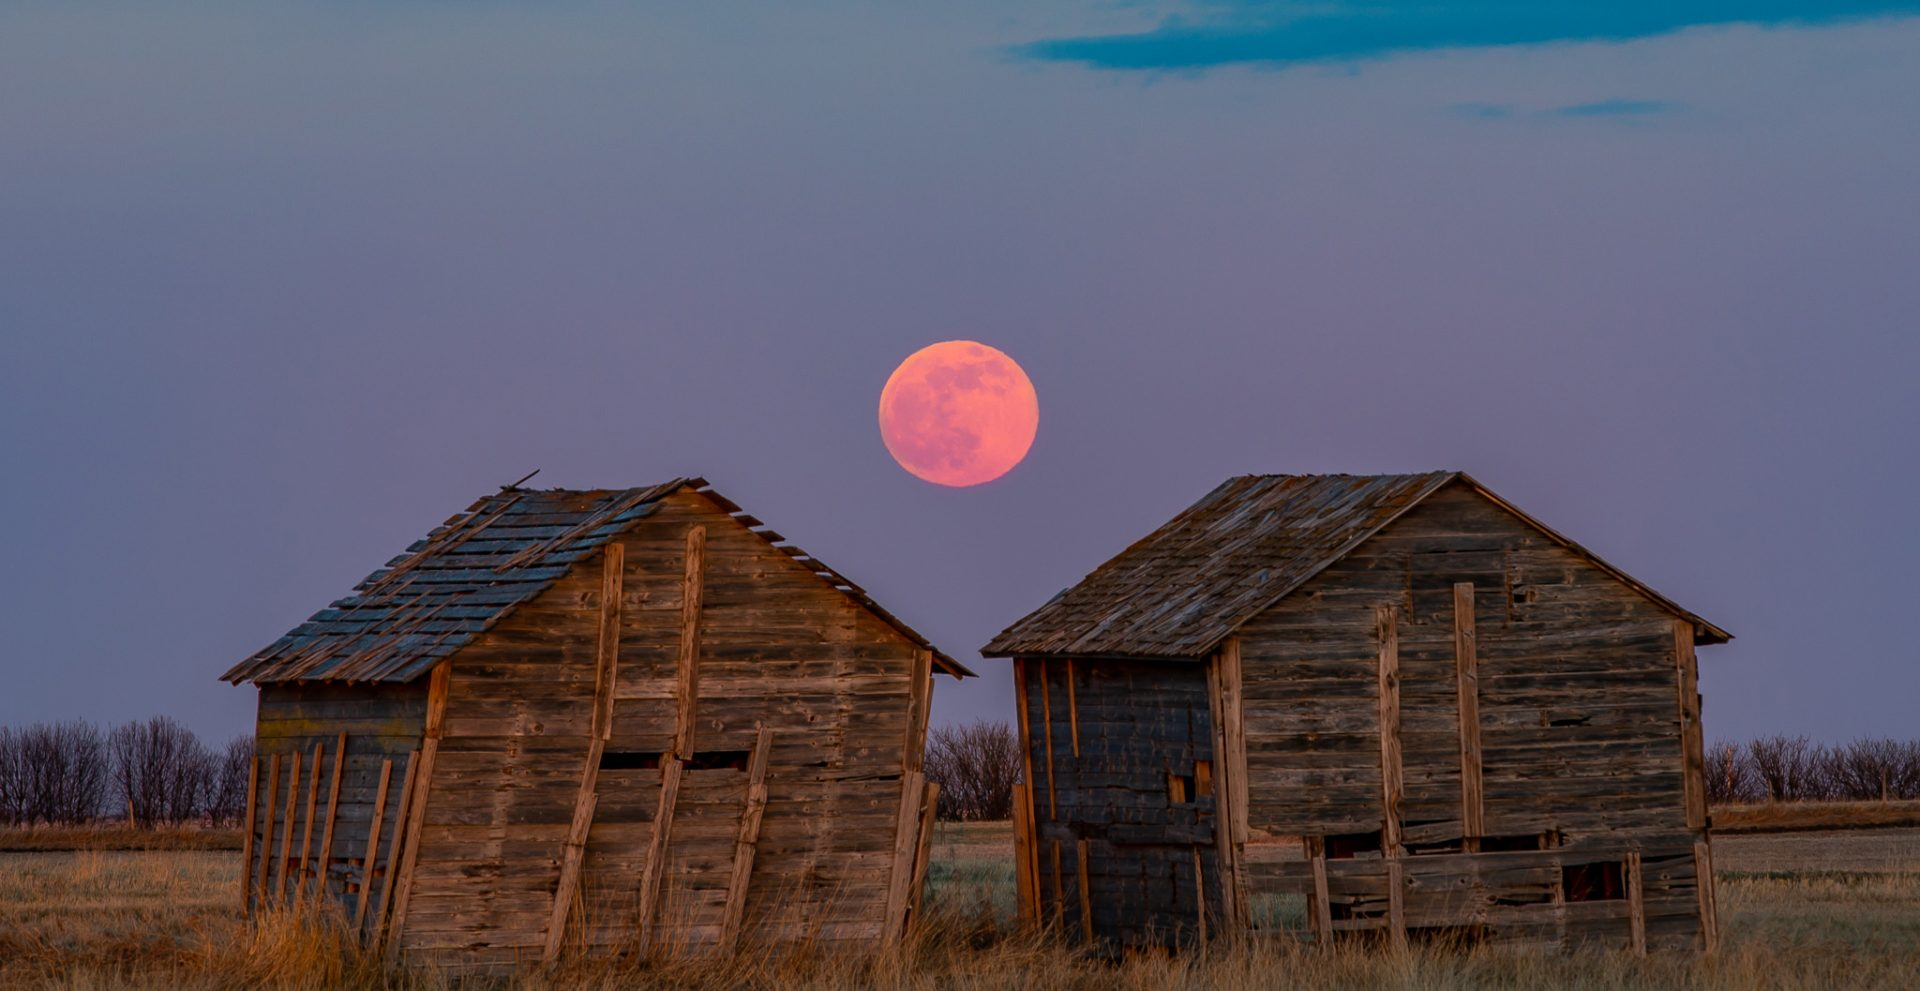 15 photos of the Super Pink Moon in Canadian skies last night